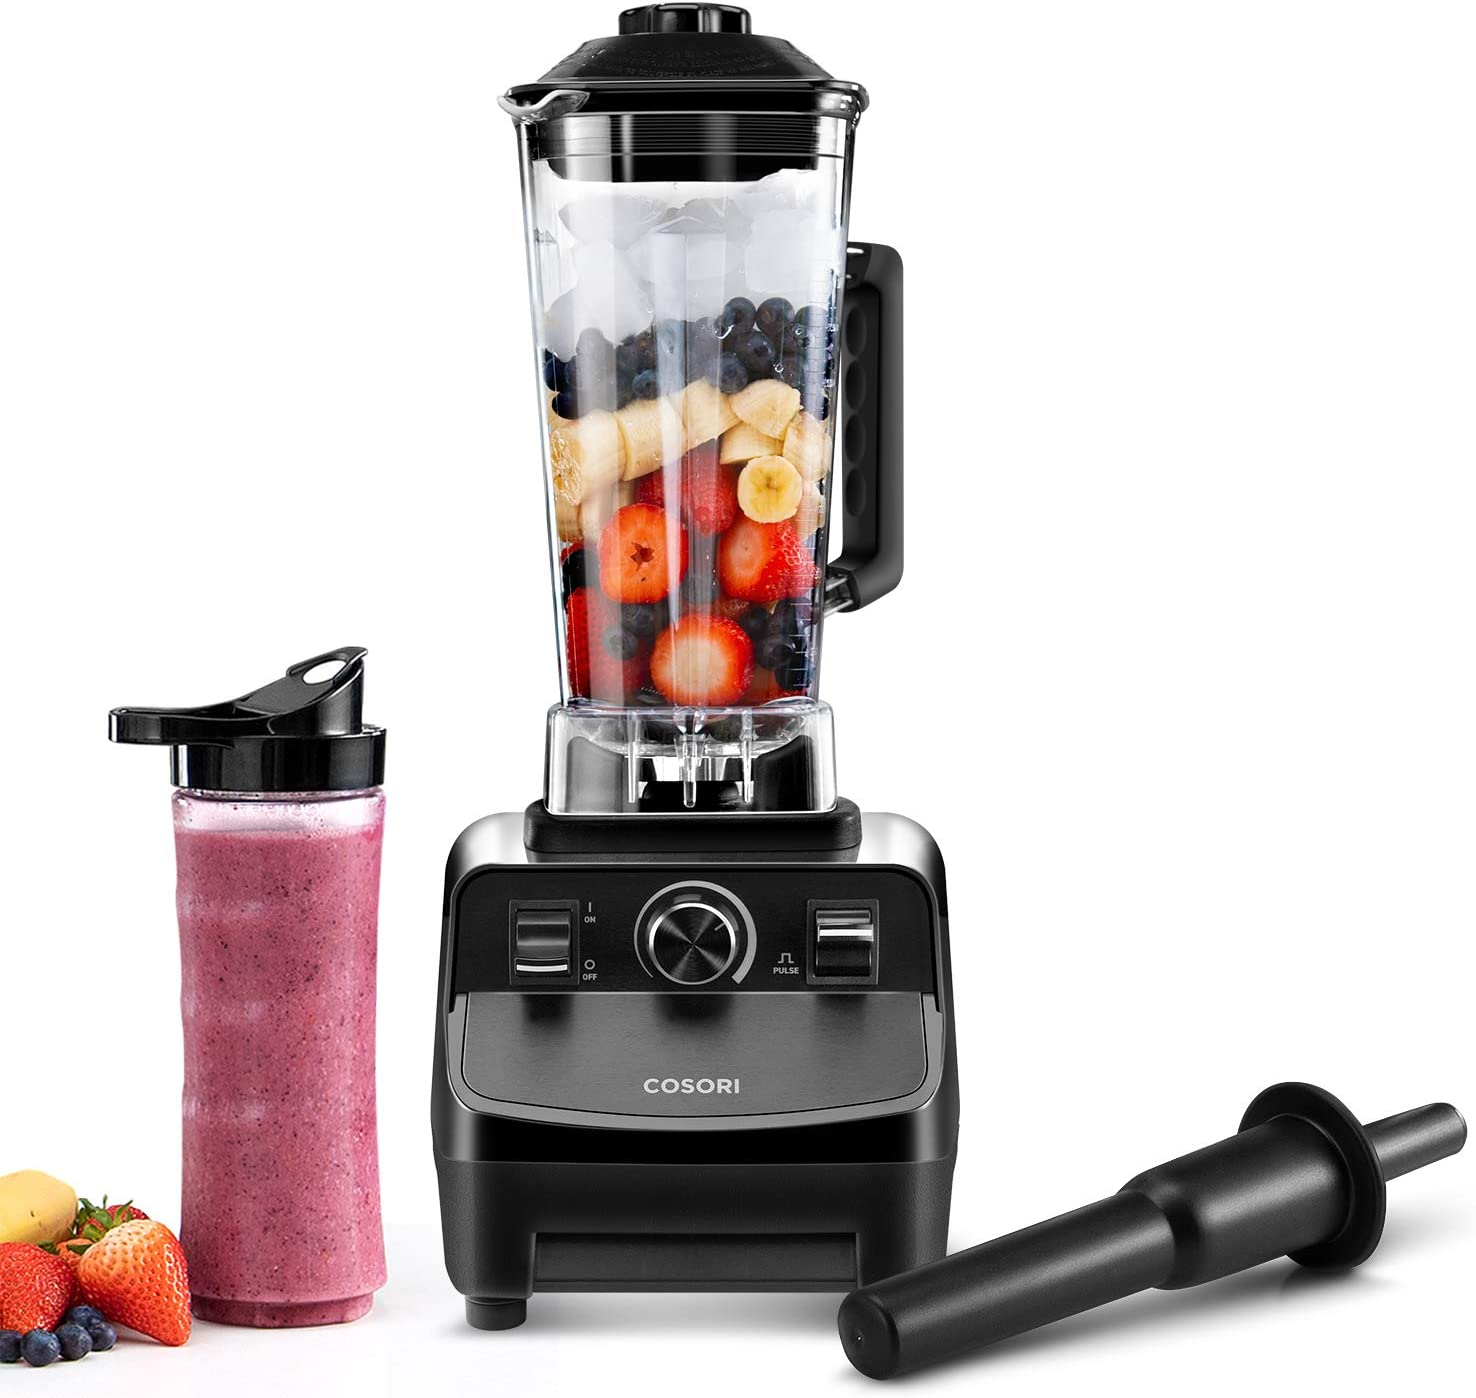 COSORI Blender for Shakes & Smoothies(50 Recipes), 1400W Heavy Duty Professional Blender For Crushing Ice, Frozen Fruit with 64oz Pitcher&20Oz Travel Bottle, ETL Listed/FDA Compliant